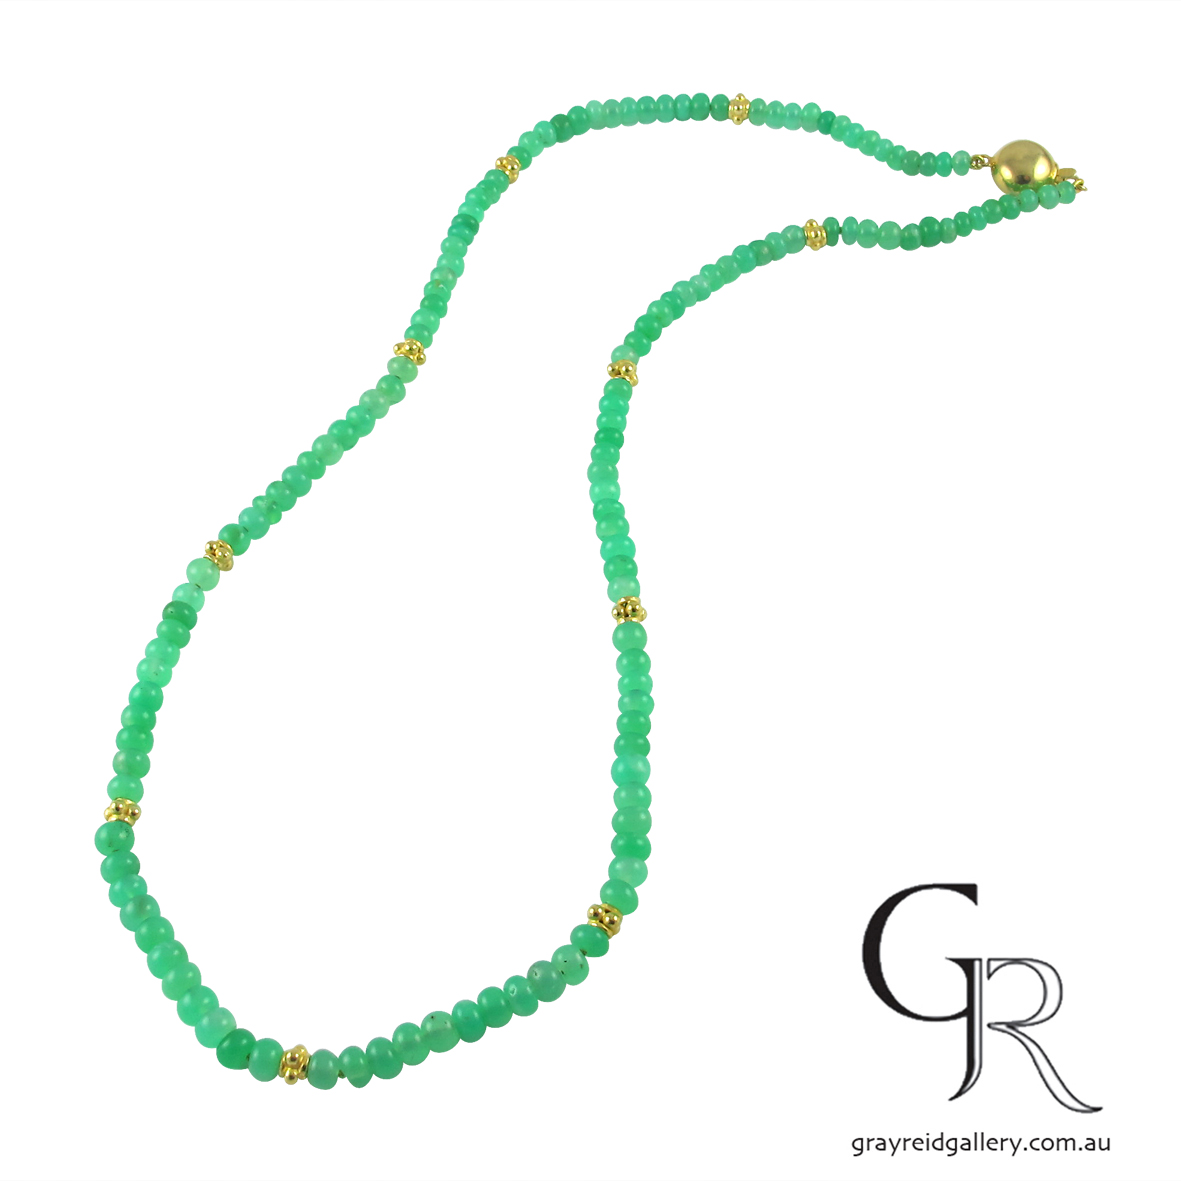 Natural Chrysoprase Beads With Gold Clasp